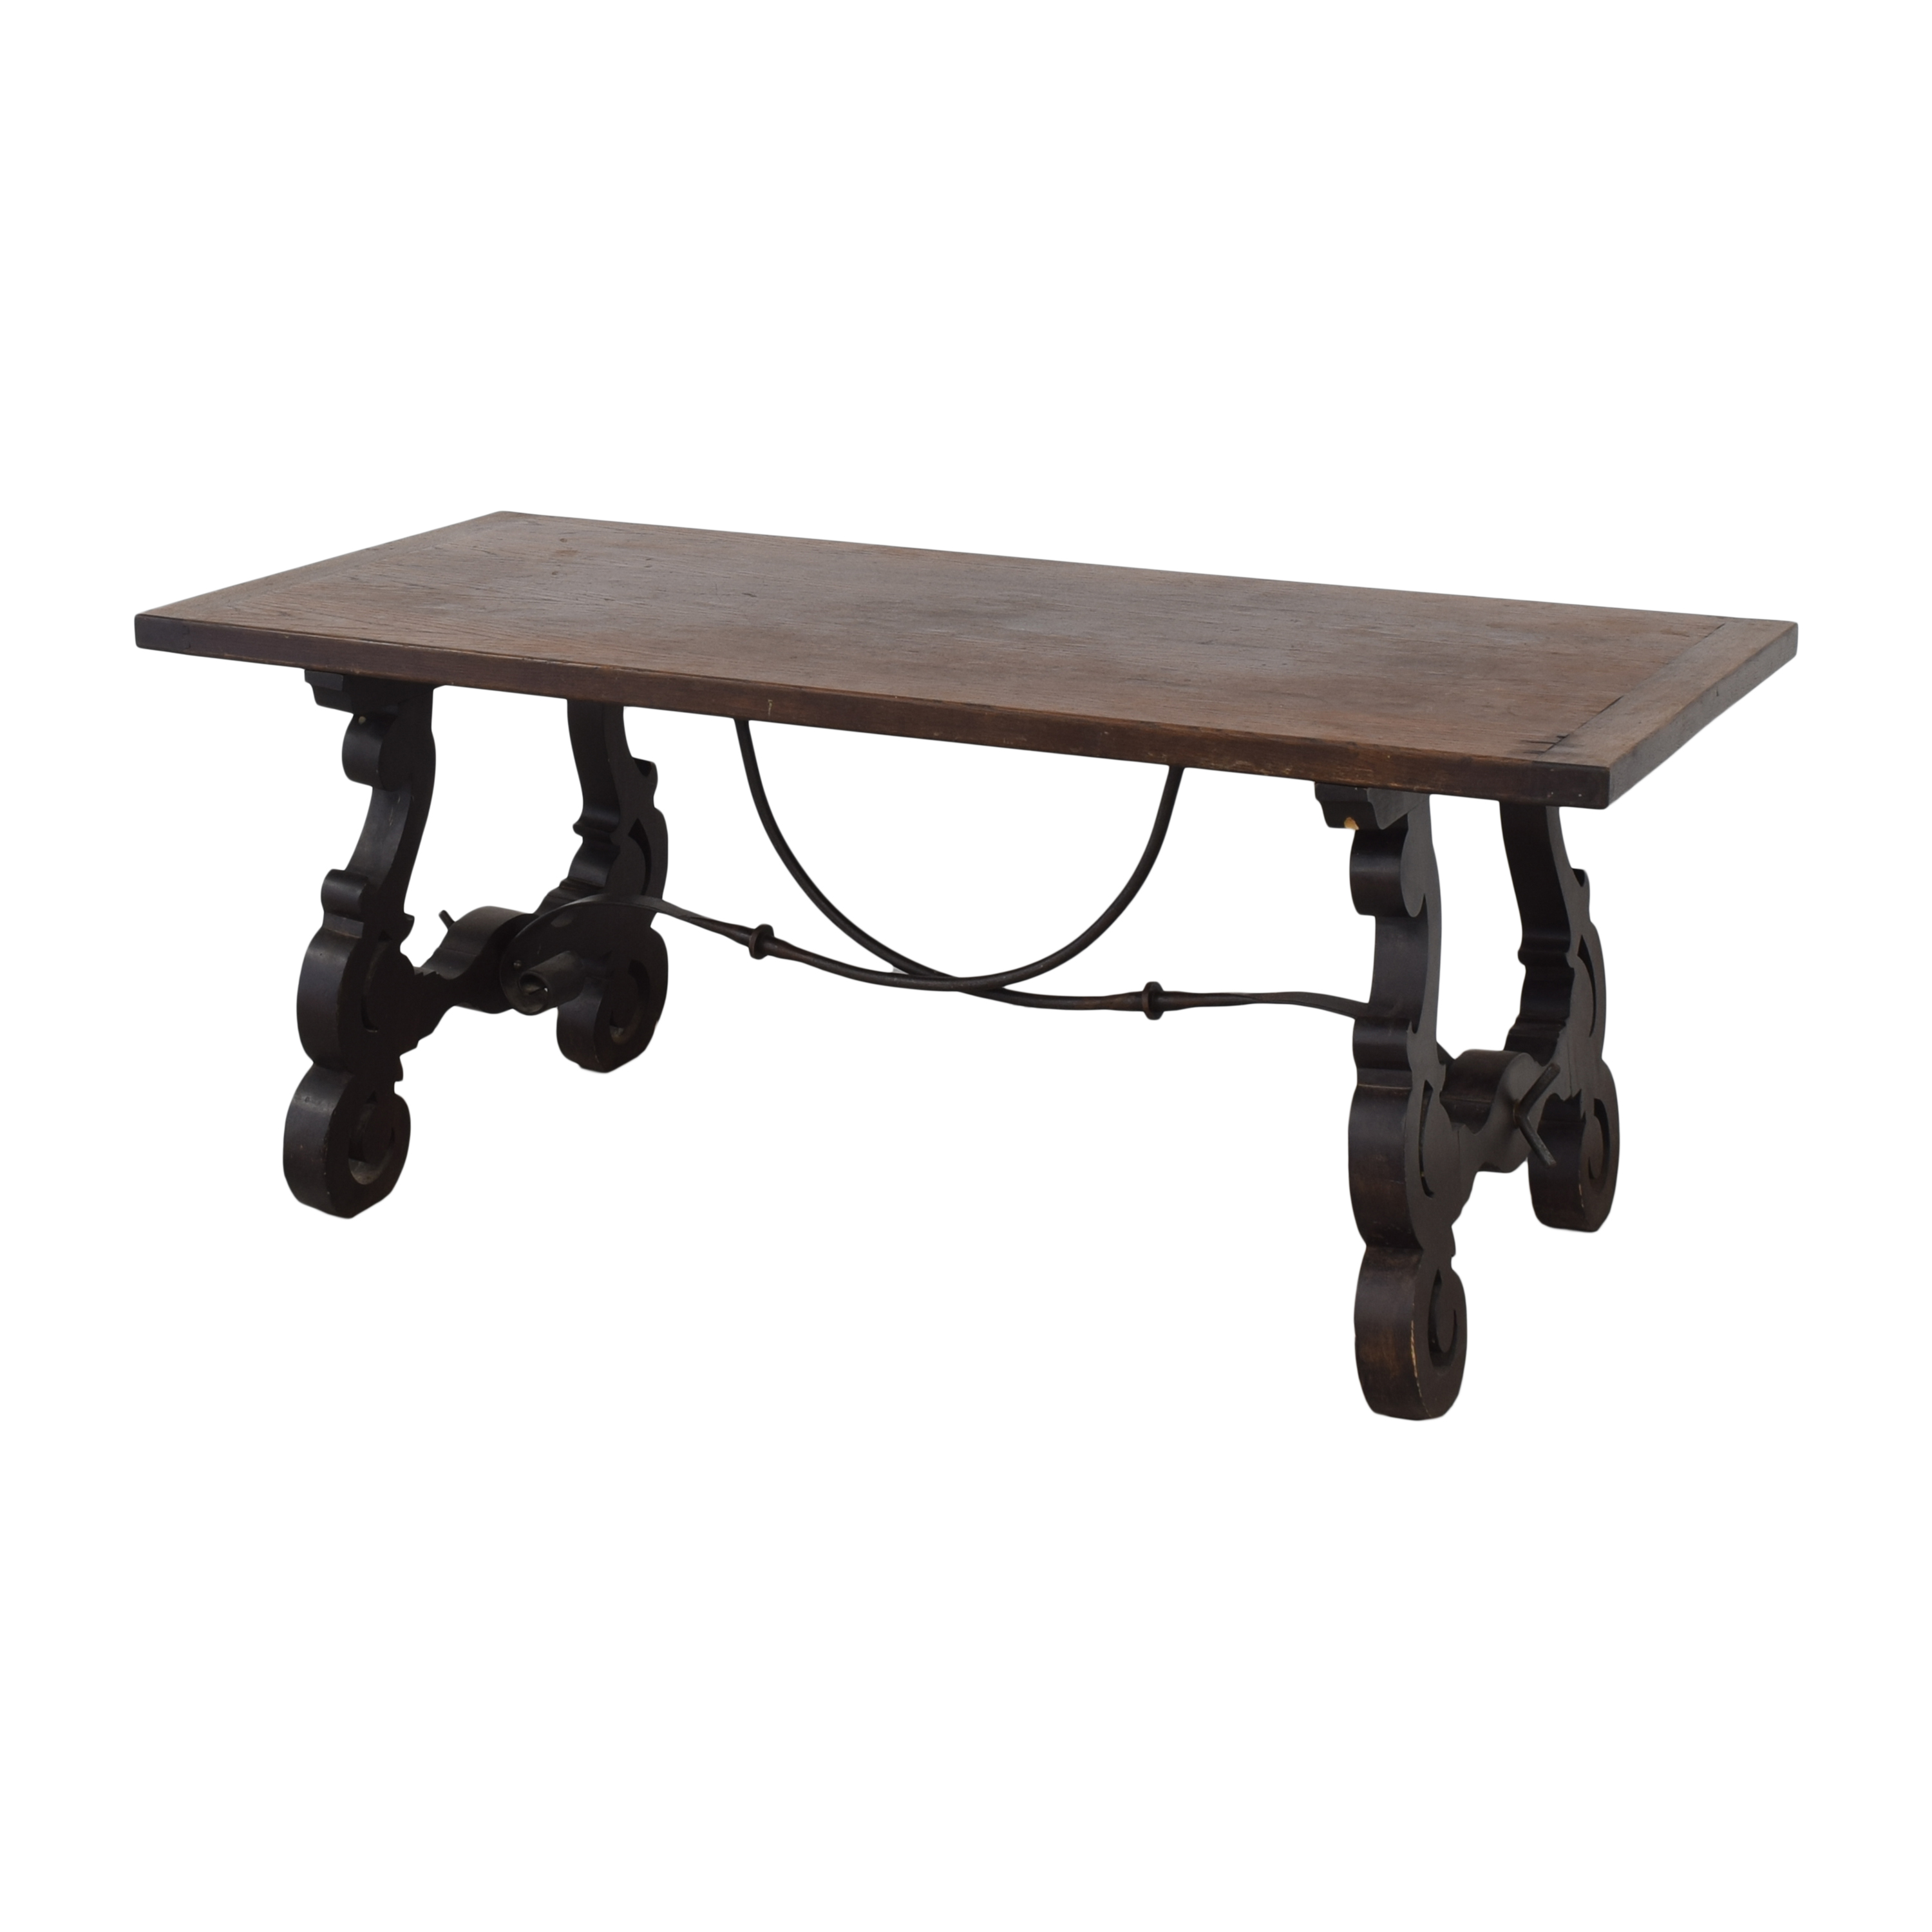 ABC Carpet & Home ABC Carpet & Home Dining Table for sale